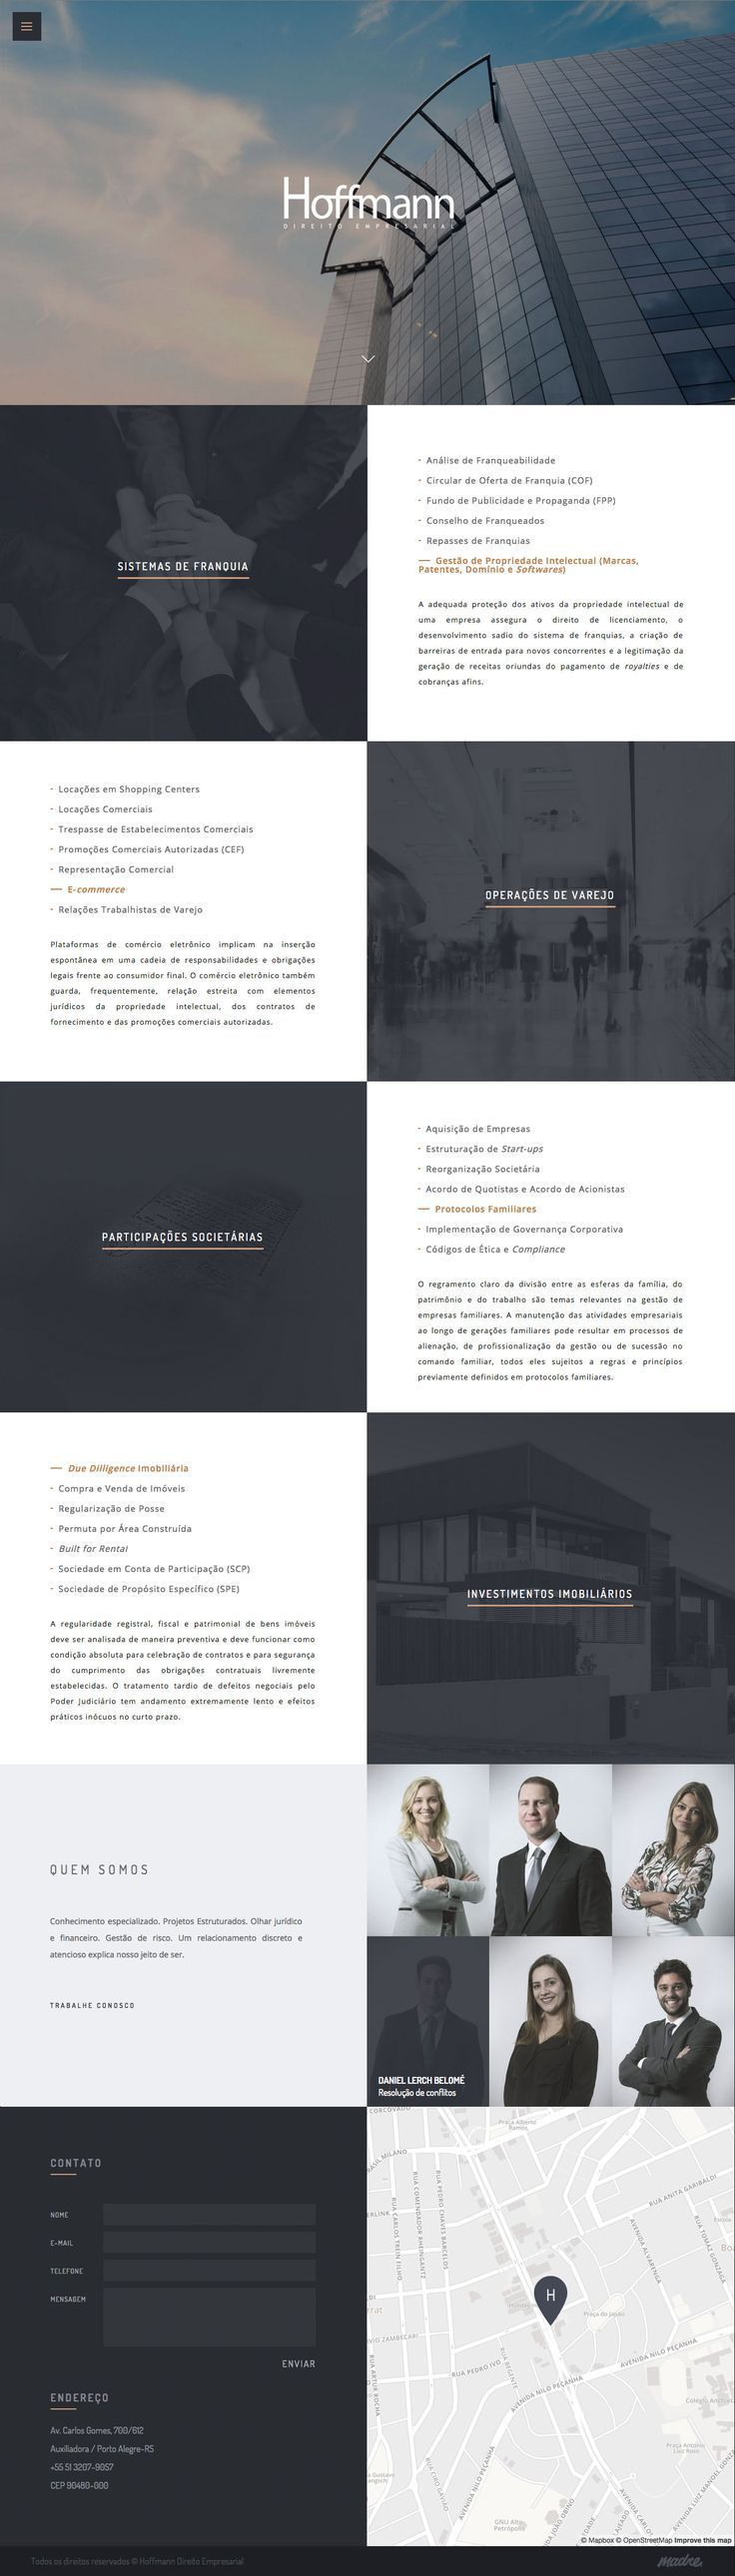 Stylish One Pager for Brazilian law firm, 'Hoffmann' featuring a good responsive…